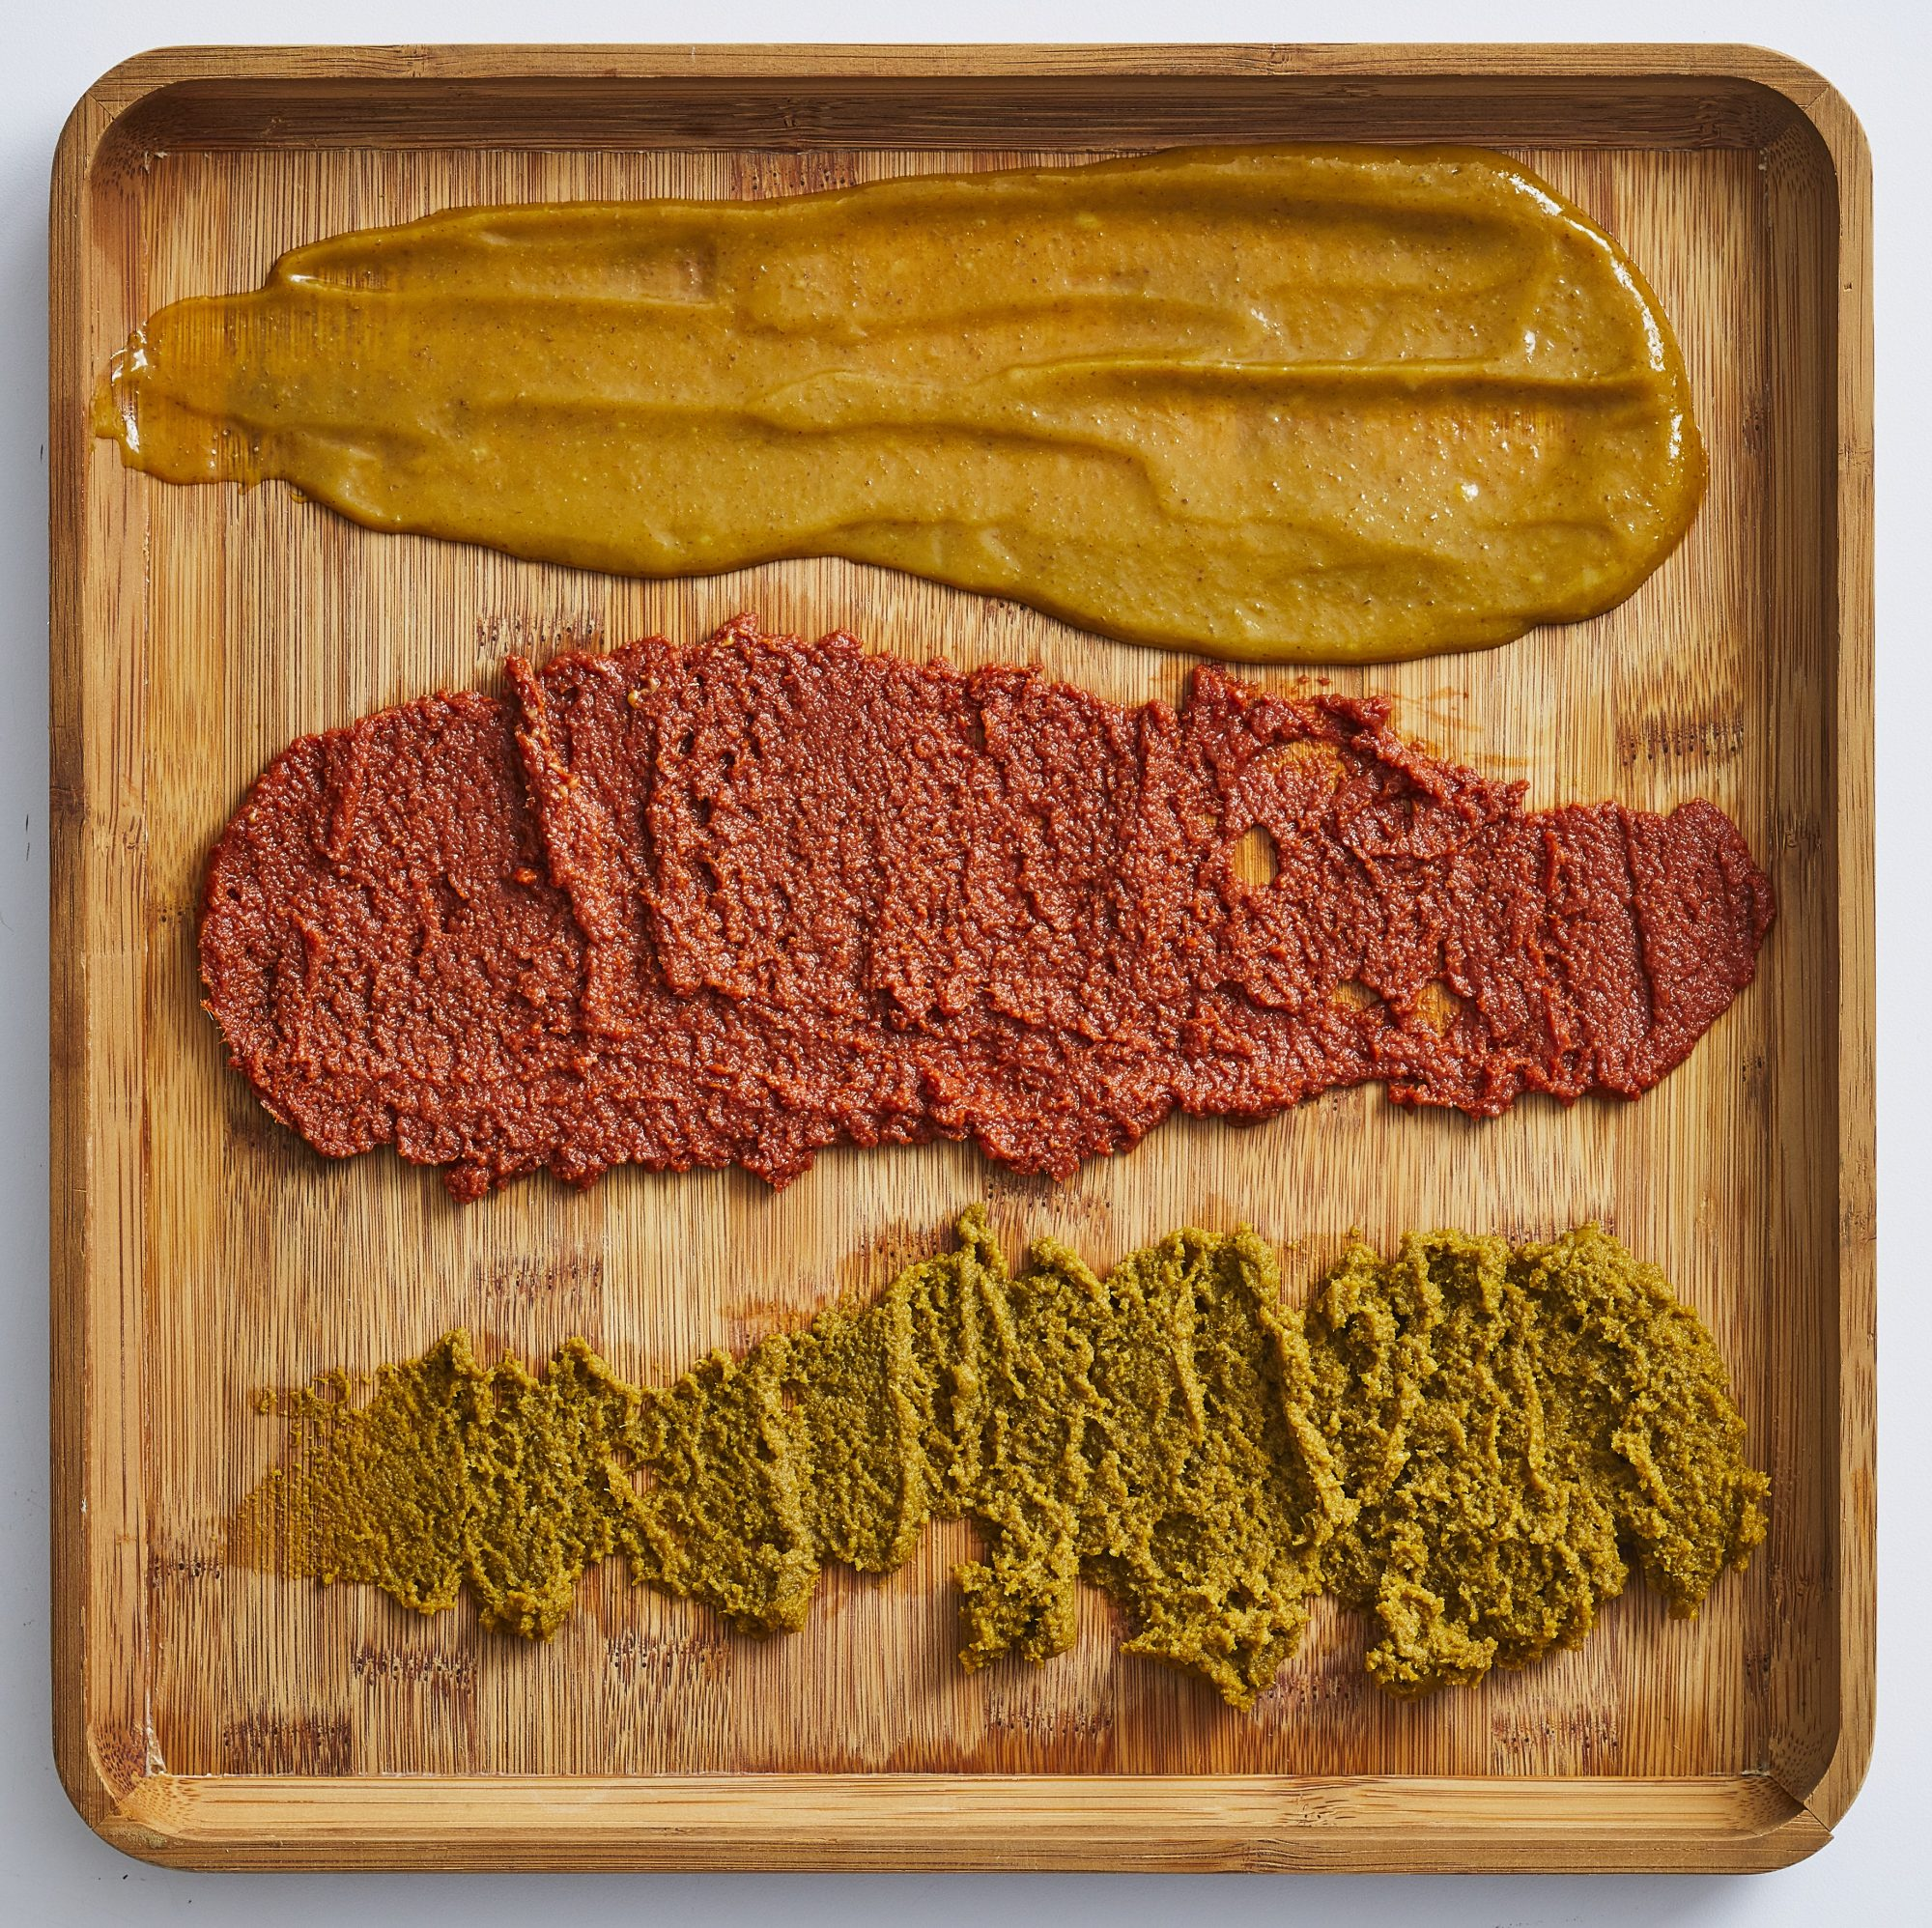 Red, yellow, and green curry paste